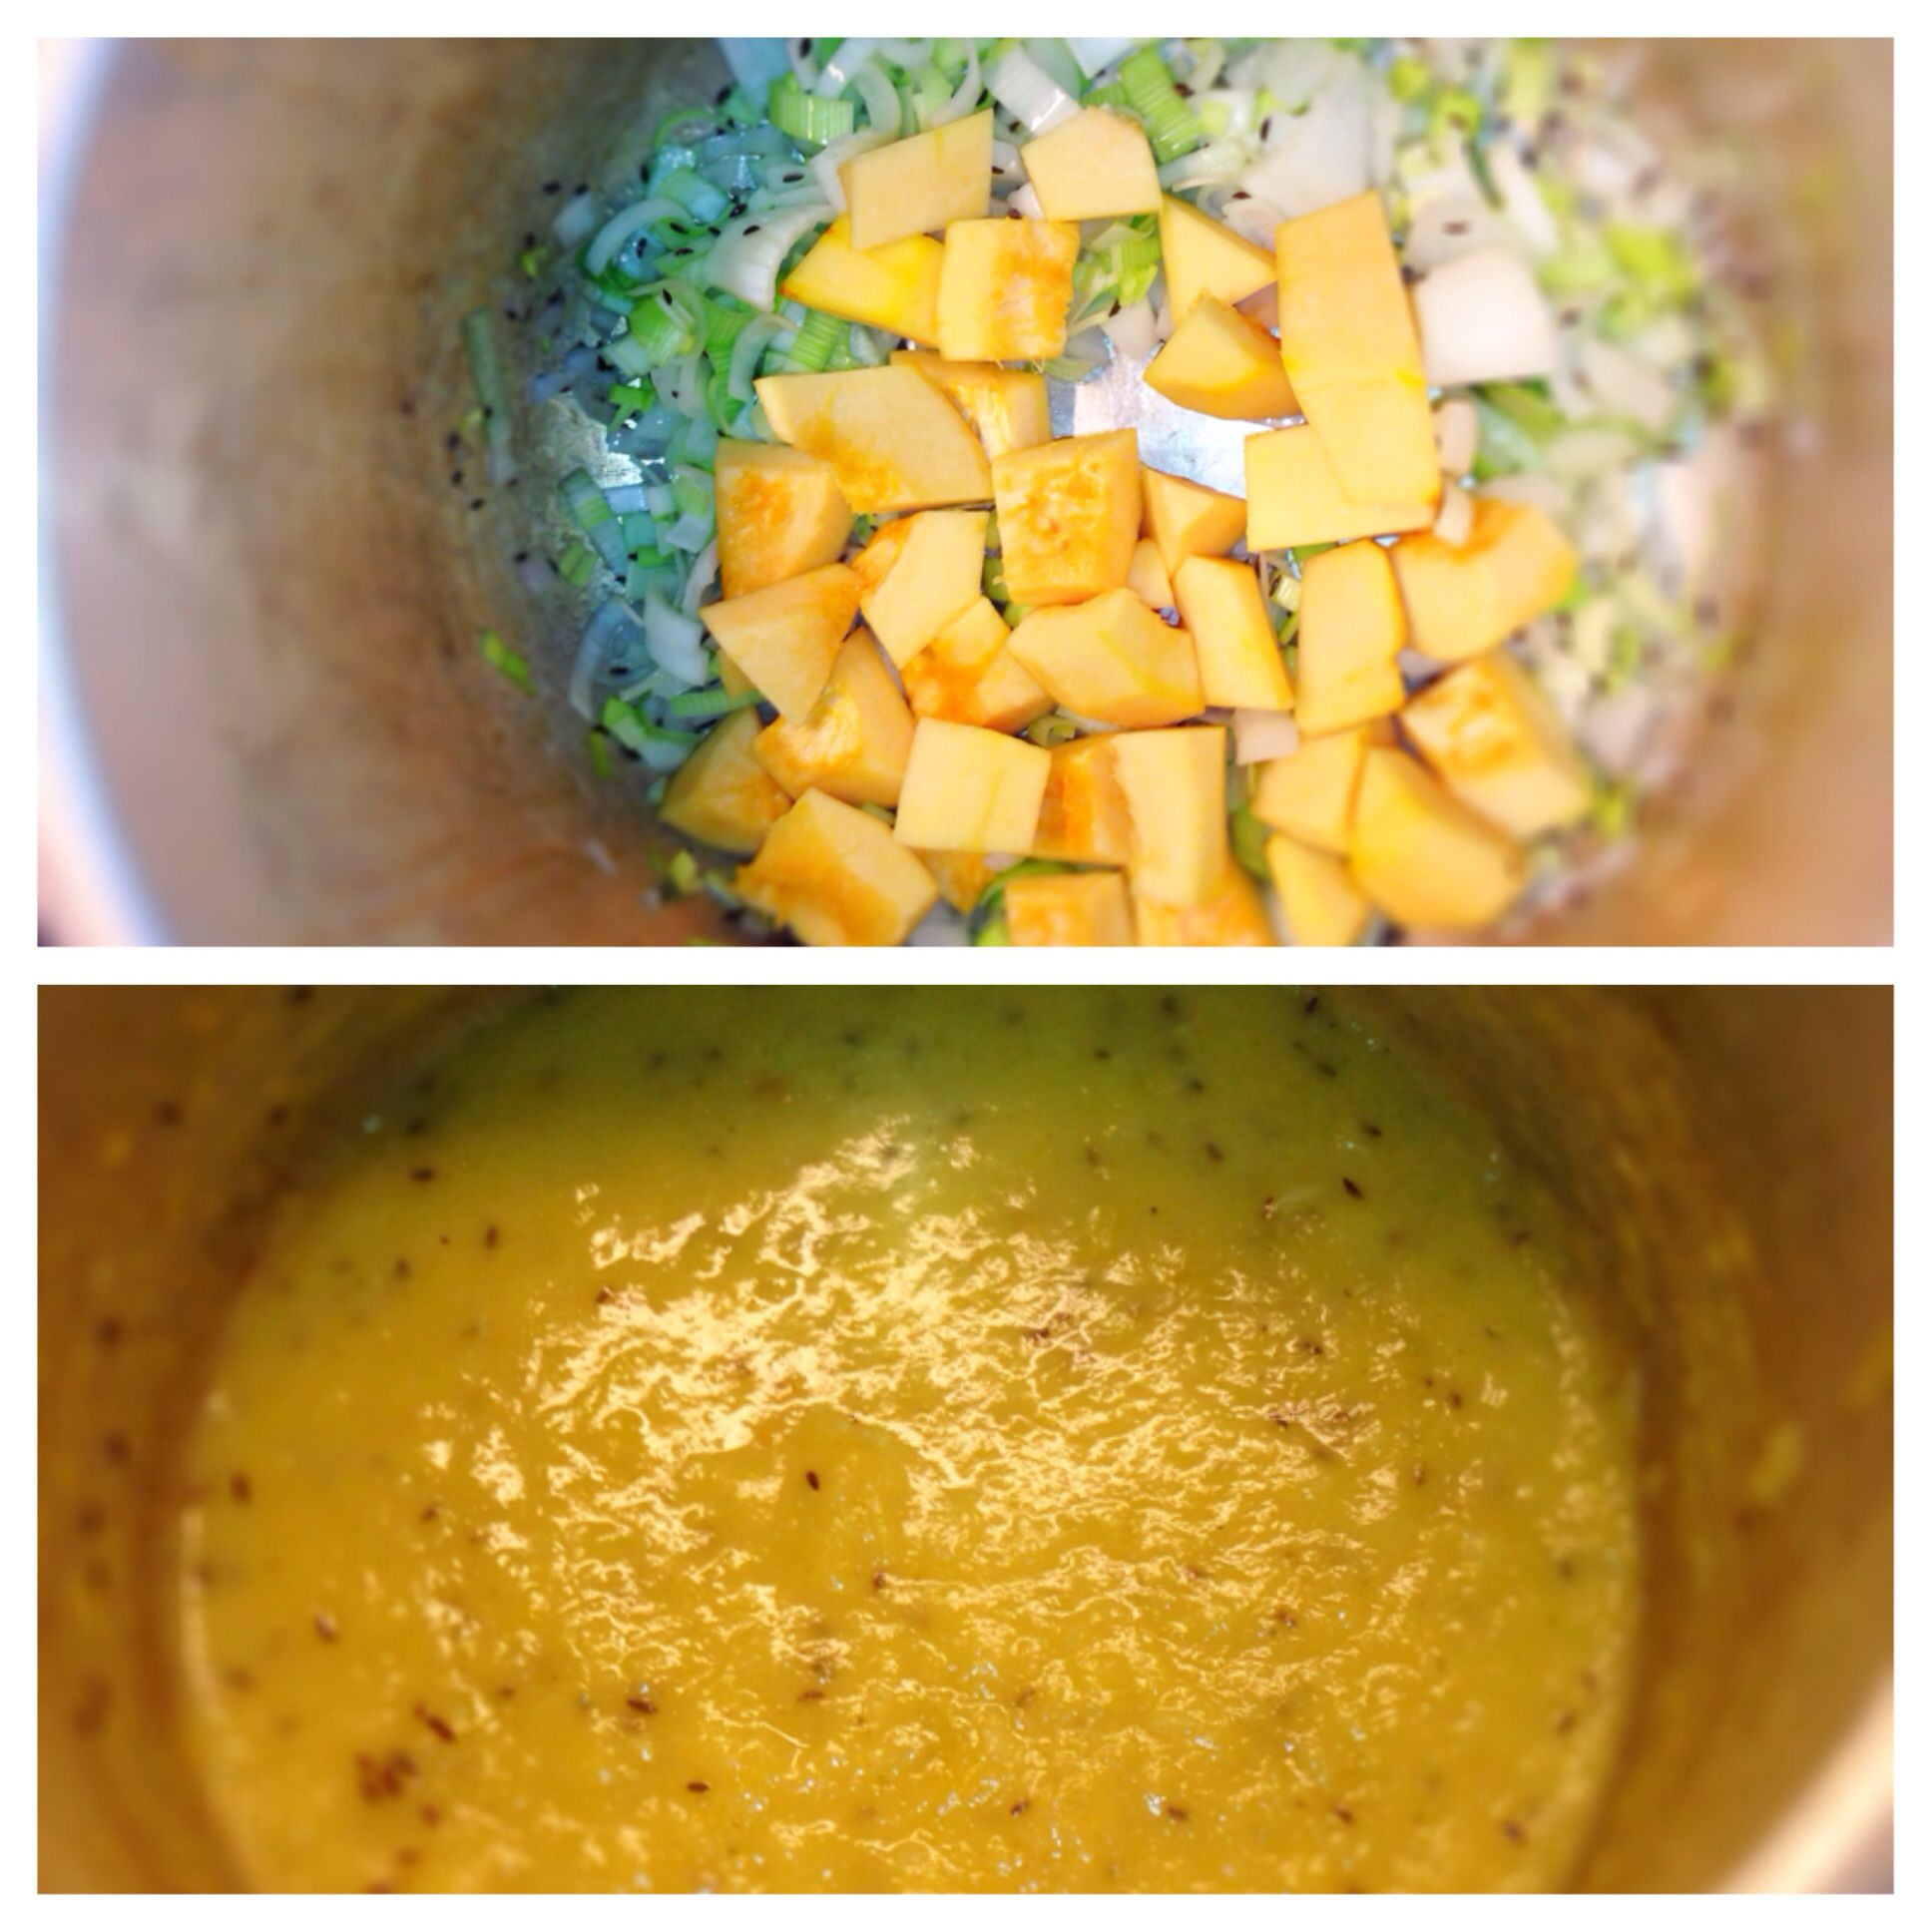 Acorn Squash Soup Using Pressure Cooker 1 Squash Can Also Use Pumpkin Or Butternut Squash 1 Leek 1 Small Yellow O With Images Acorn Squash Soup Onion Leeks Acorn Squash